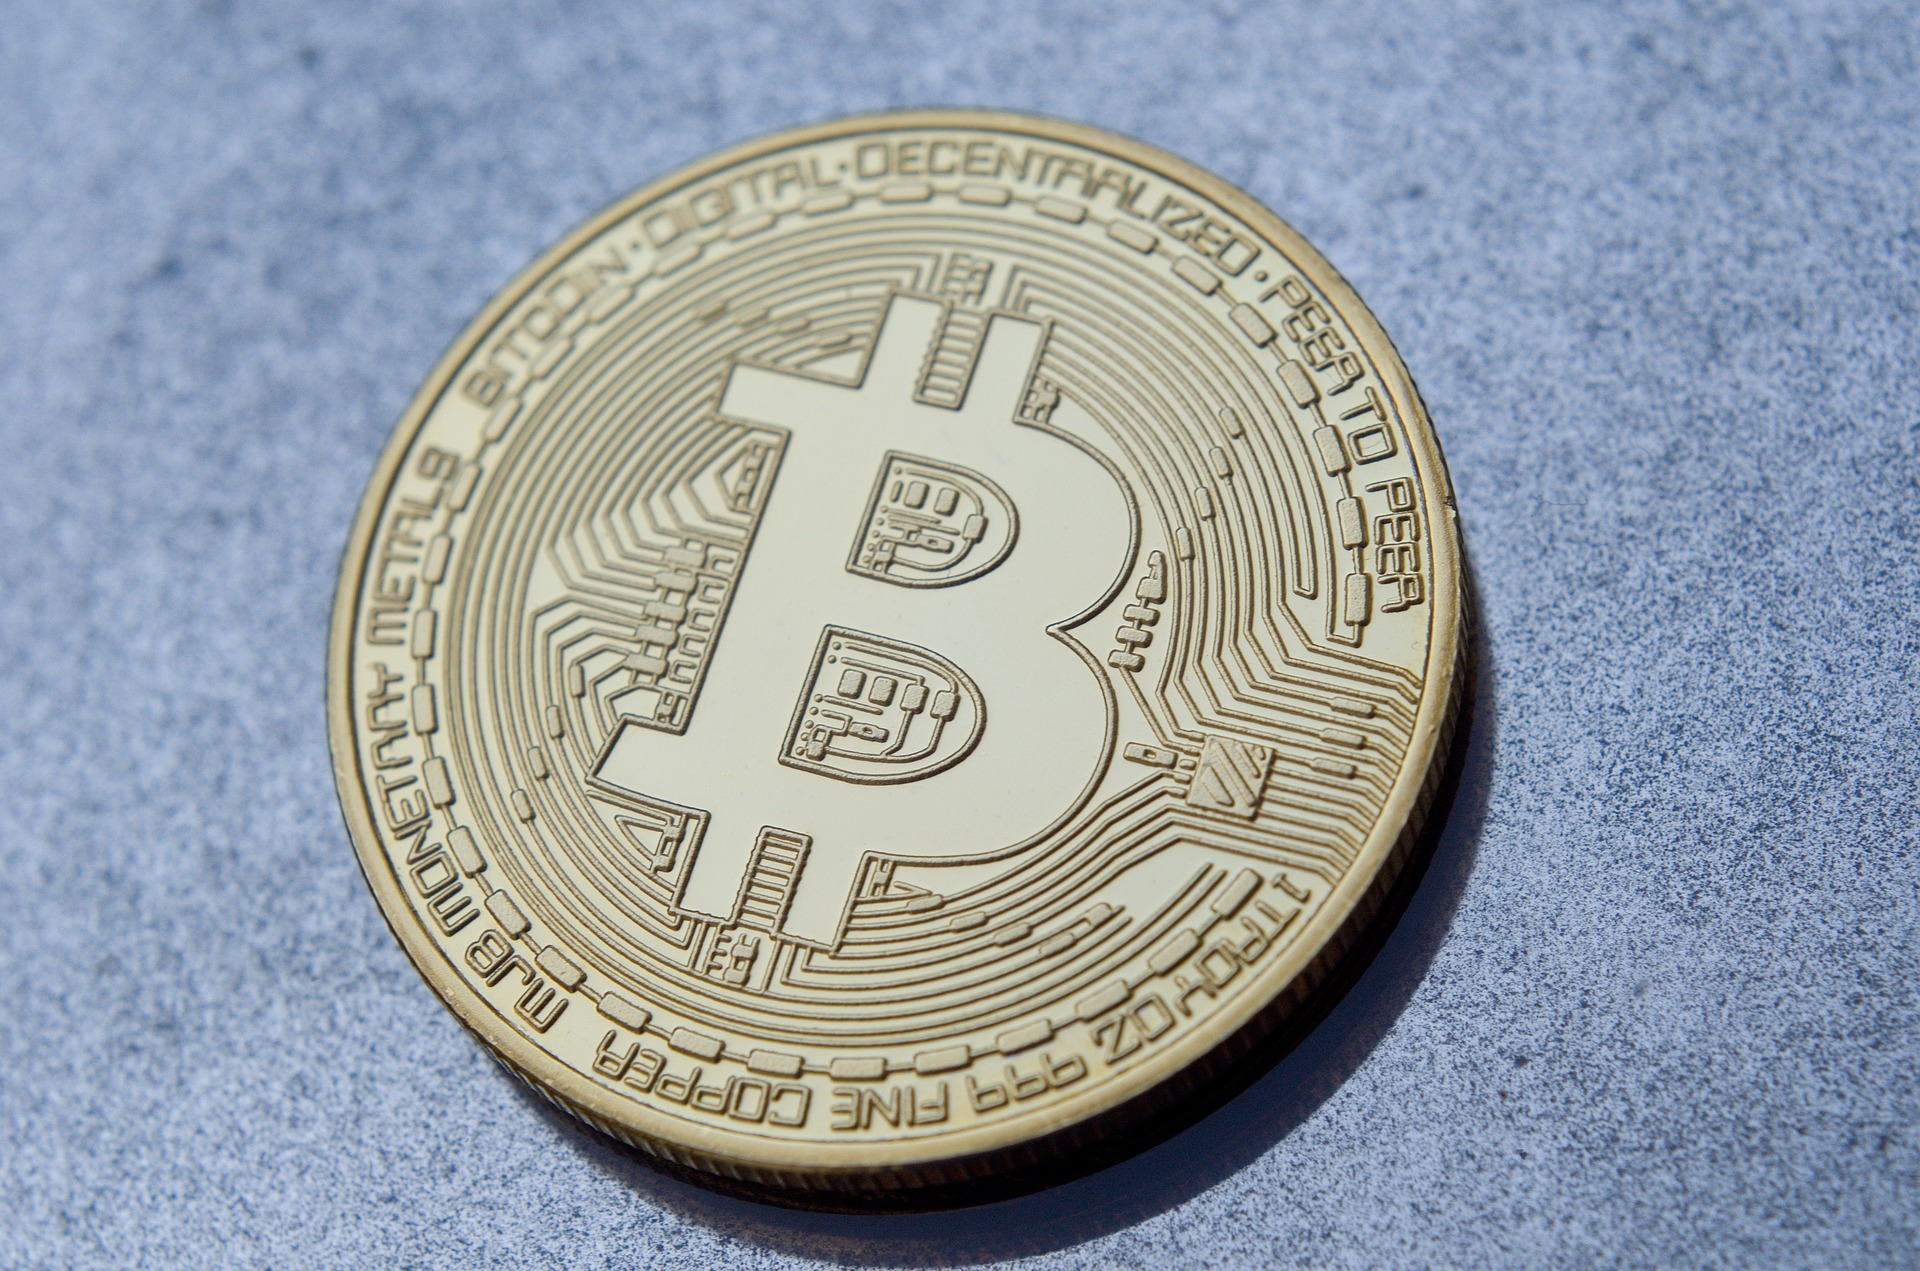 Price Of Bitcoin (BTC) Breaks Above $27K To Set New All-Time High